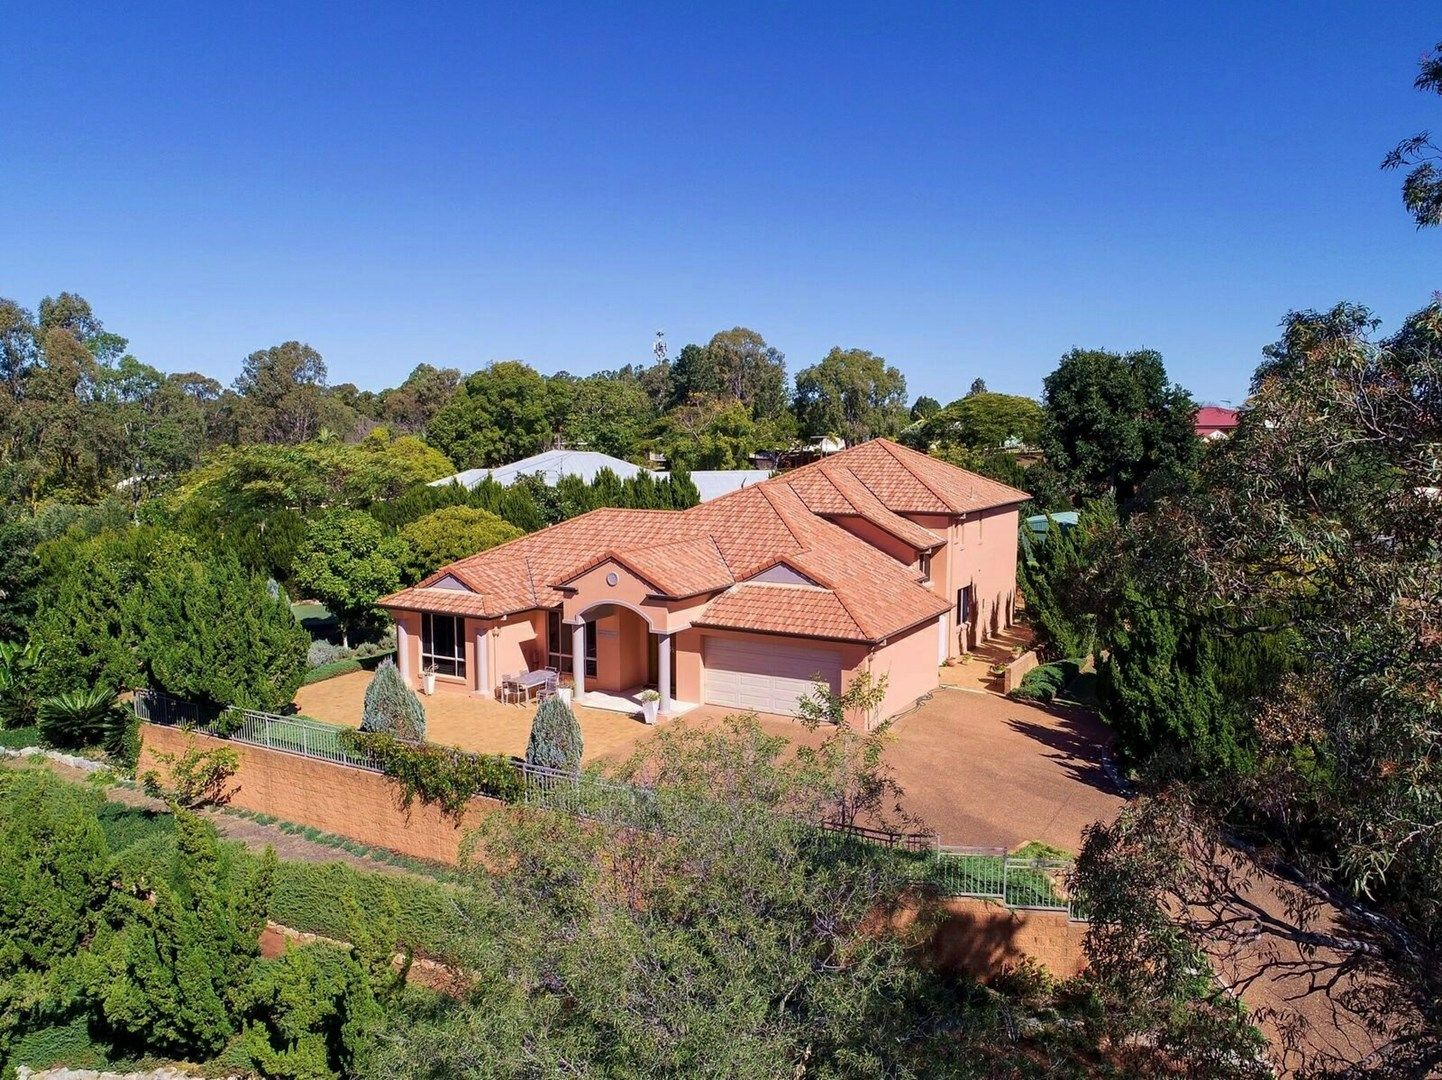 16-20 Braeview Place, Beaudesert QLD 4285, Image 1